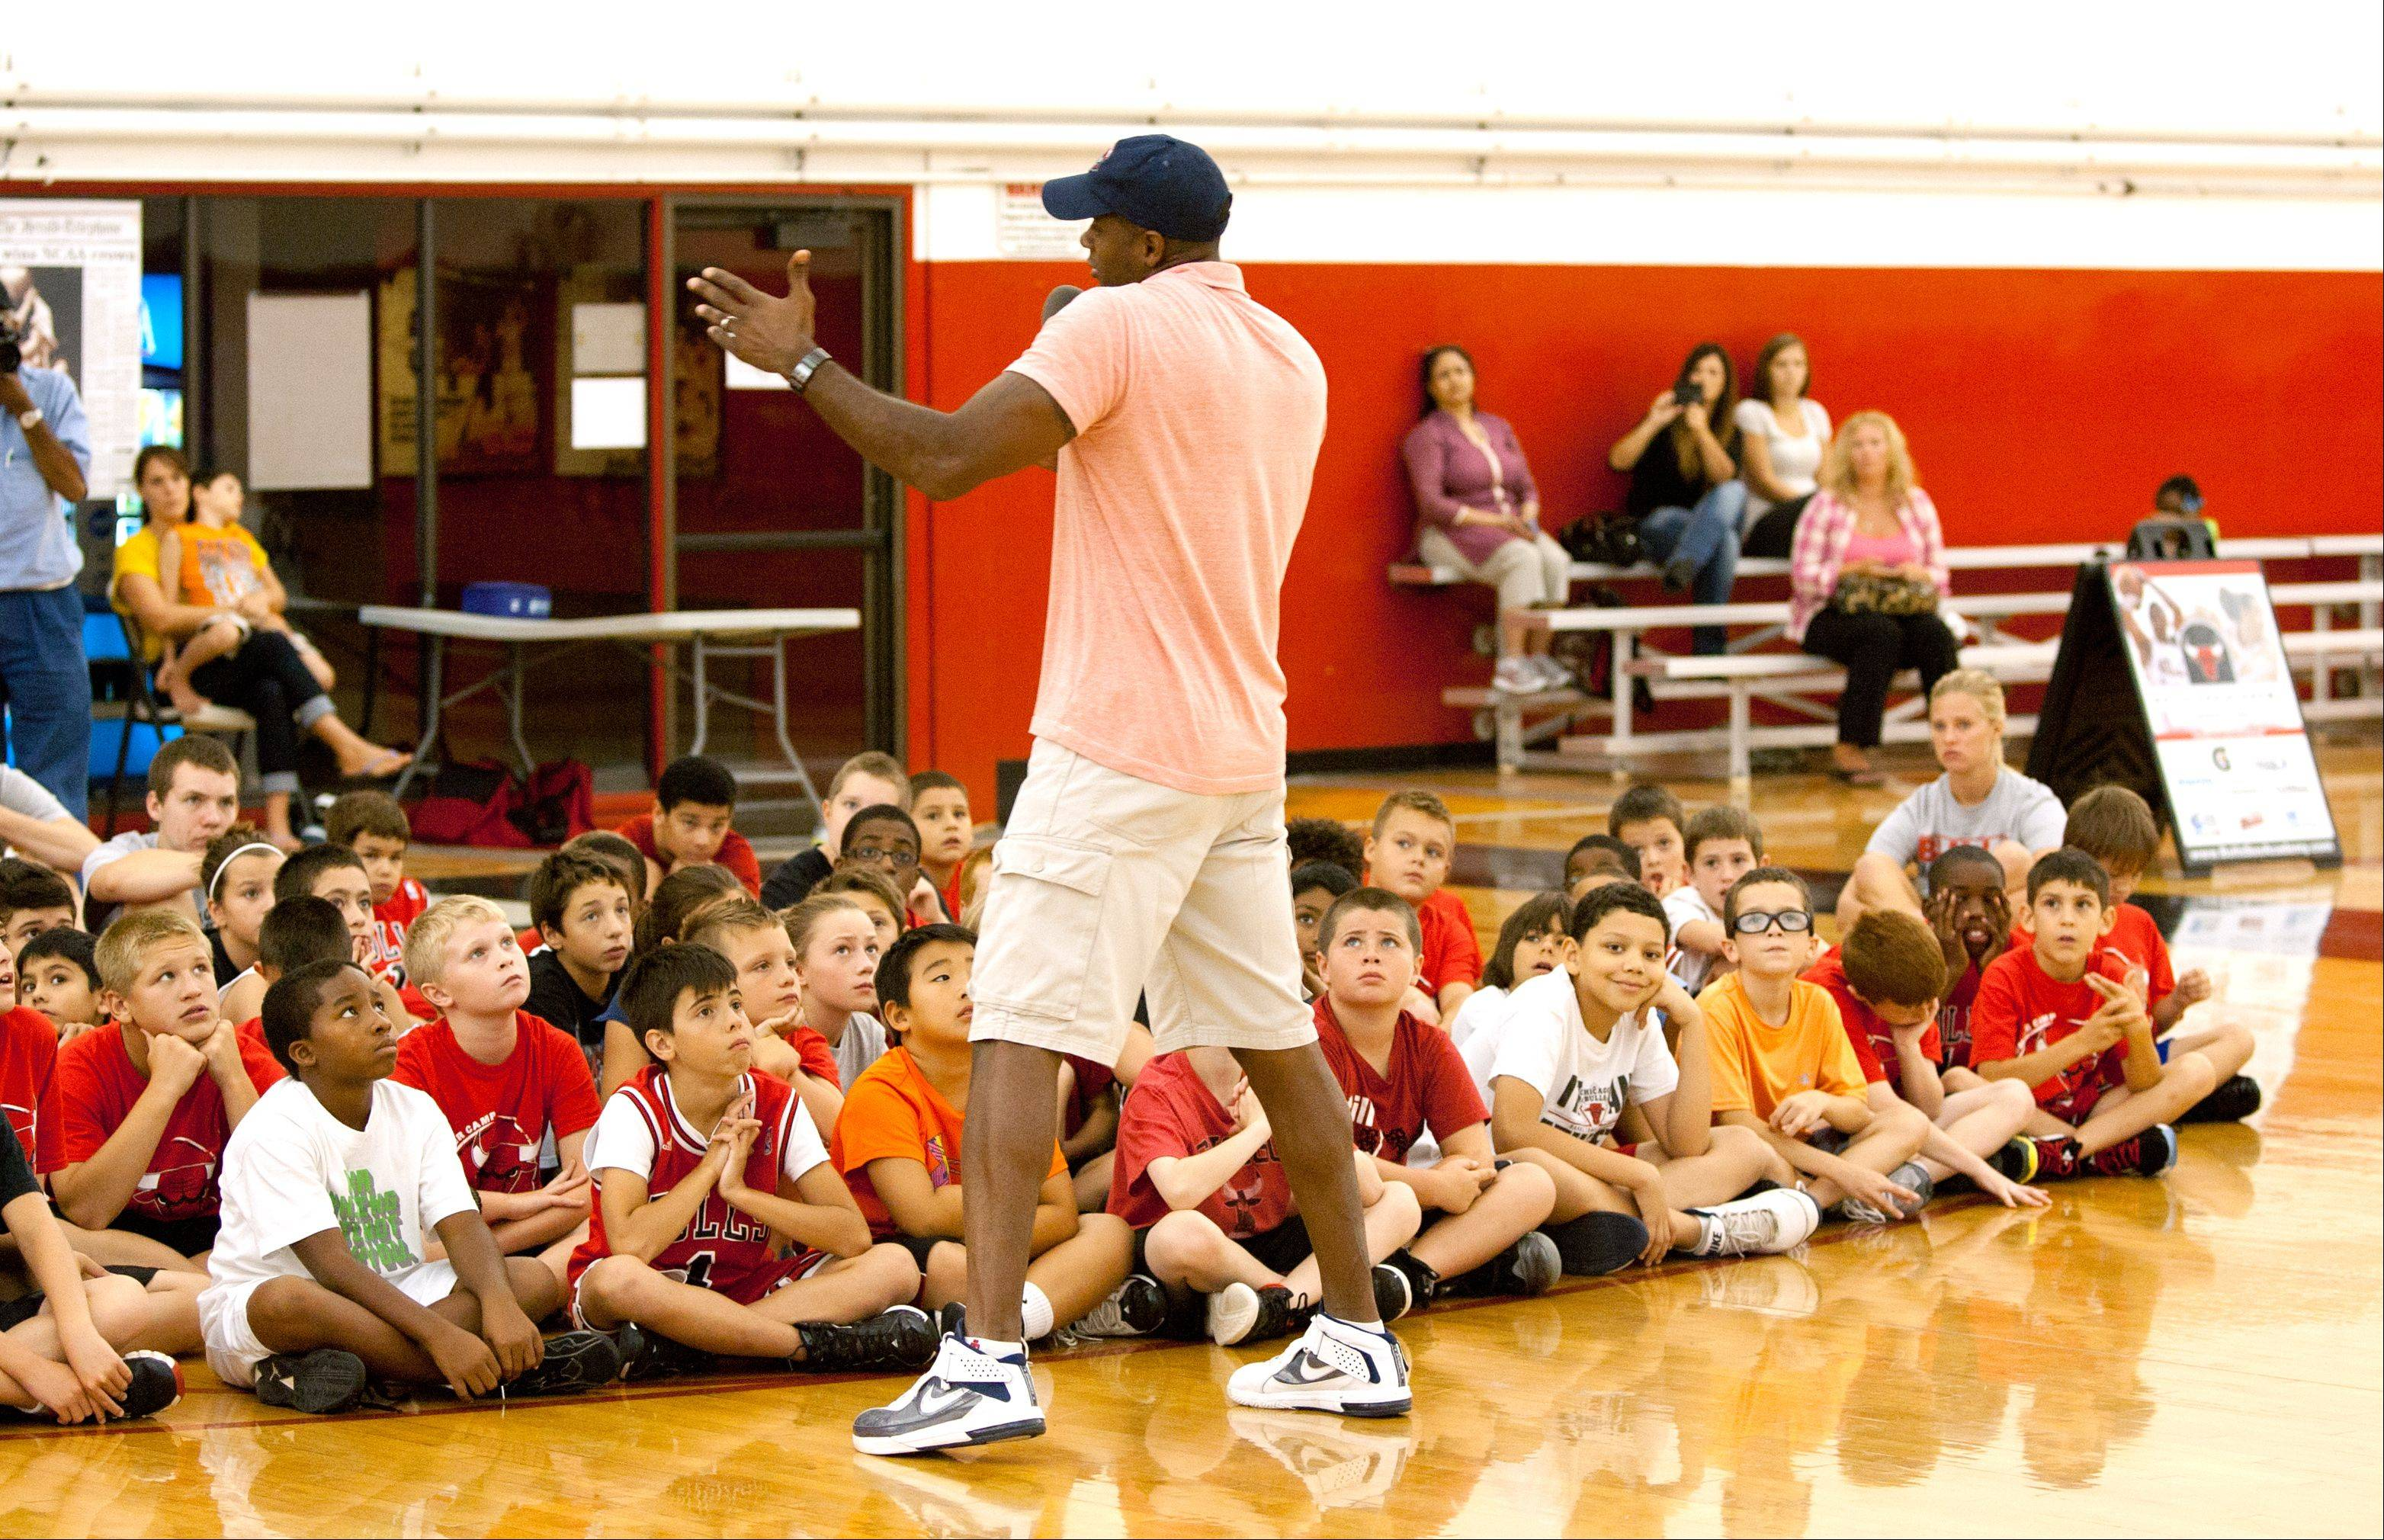 Former Bulls and Illini forward Kendall Gill stops by a youth basketball camp Thursday at the Bulls/Sox Academy in Lisle to offer advice about working hard to achieve goals in basketball and life.